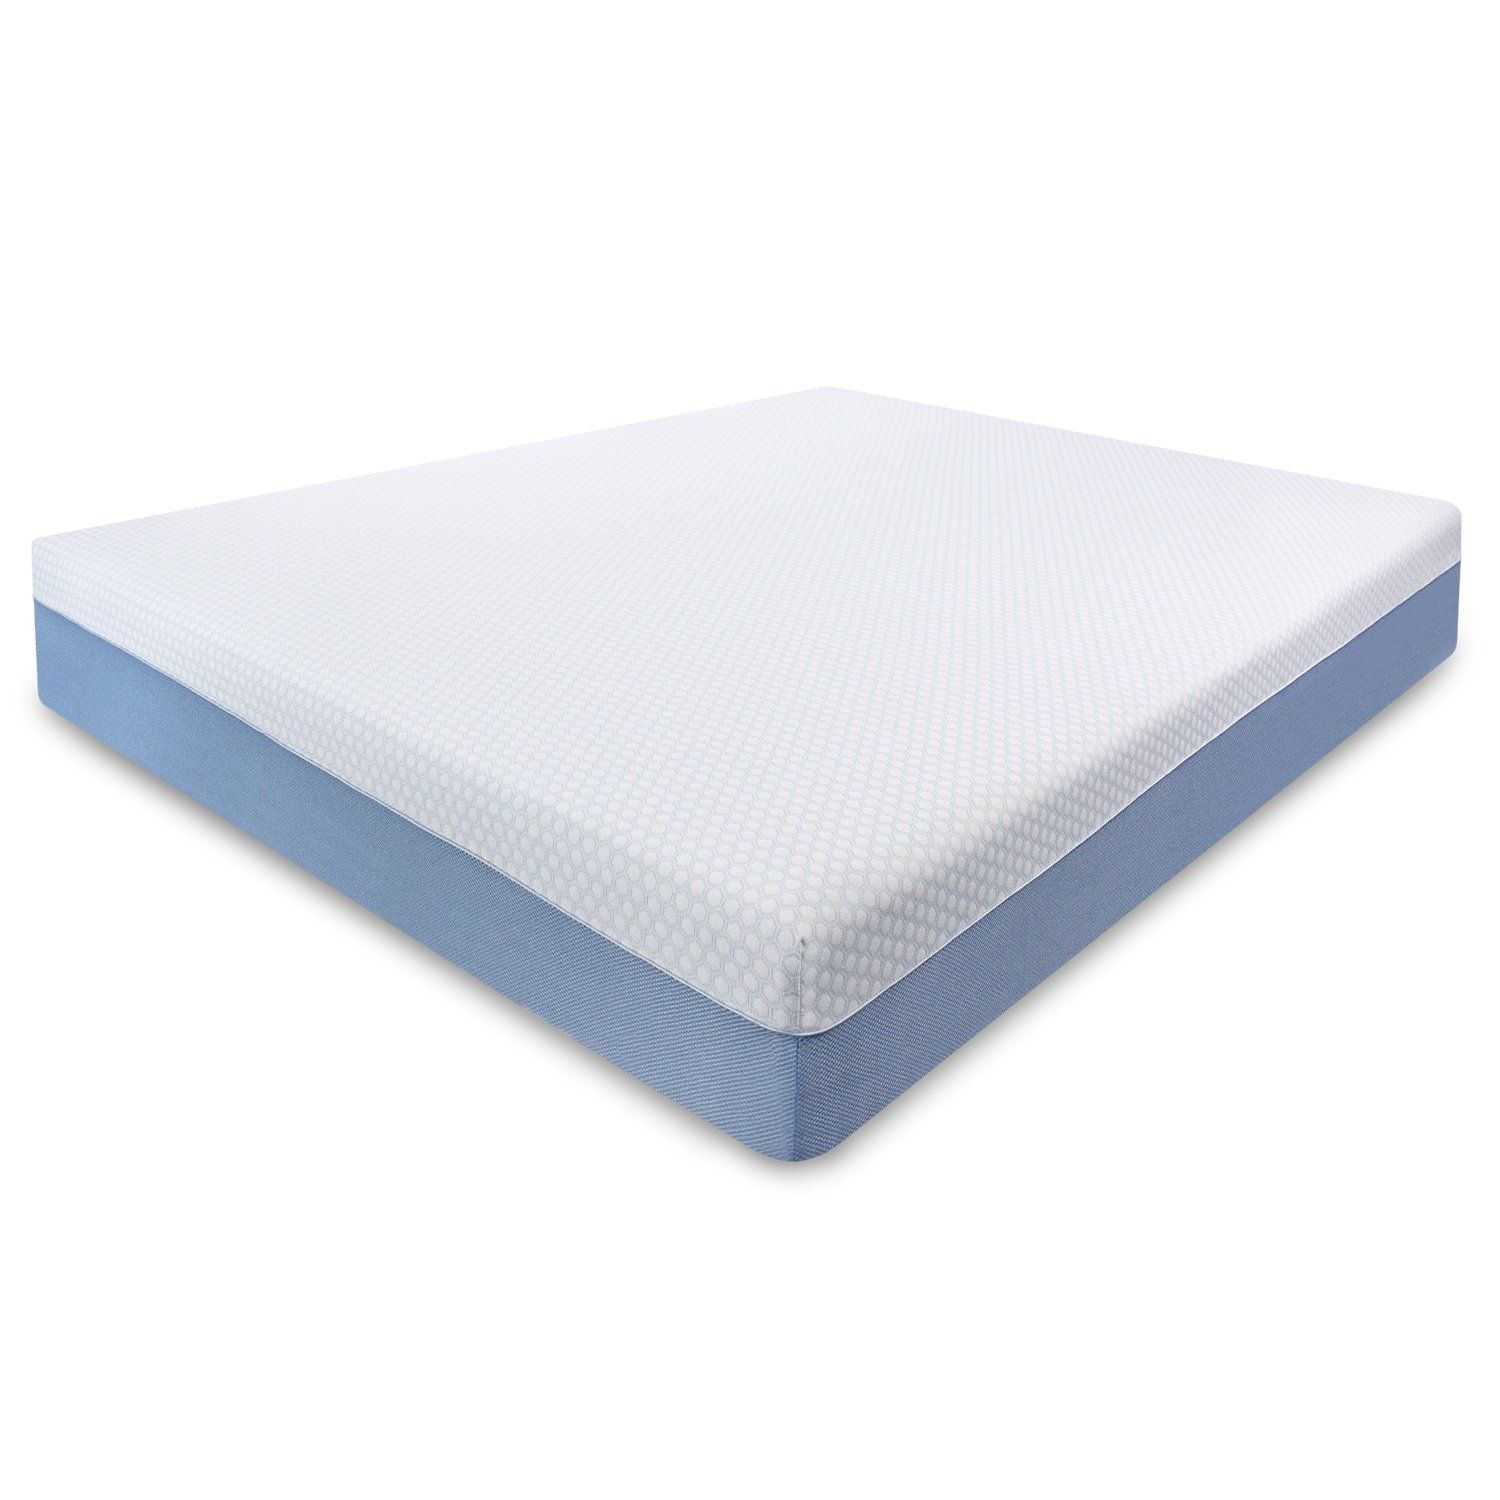 10 Queen Size Gel Memory Foam Mattress 100 Certi Pur Foam